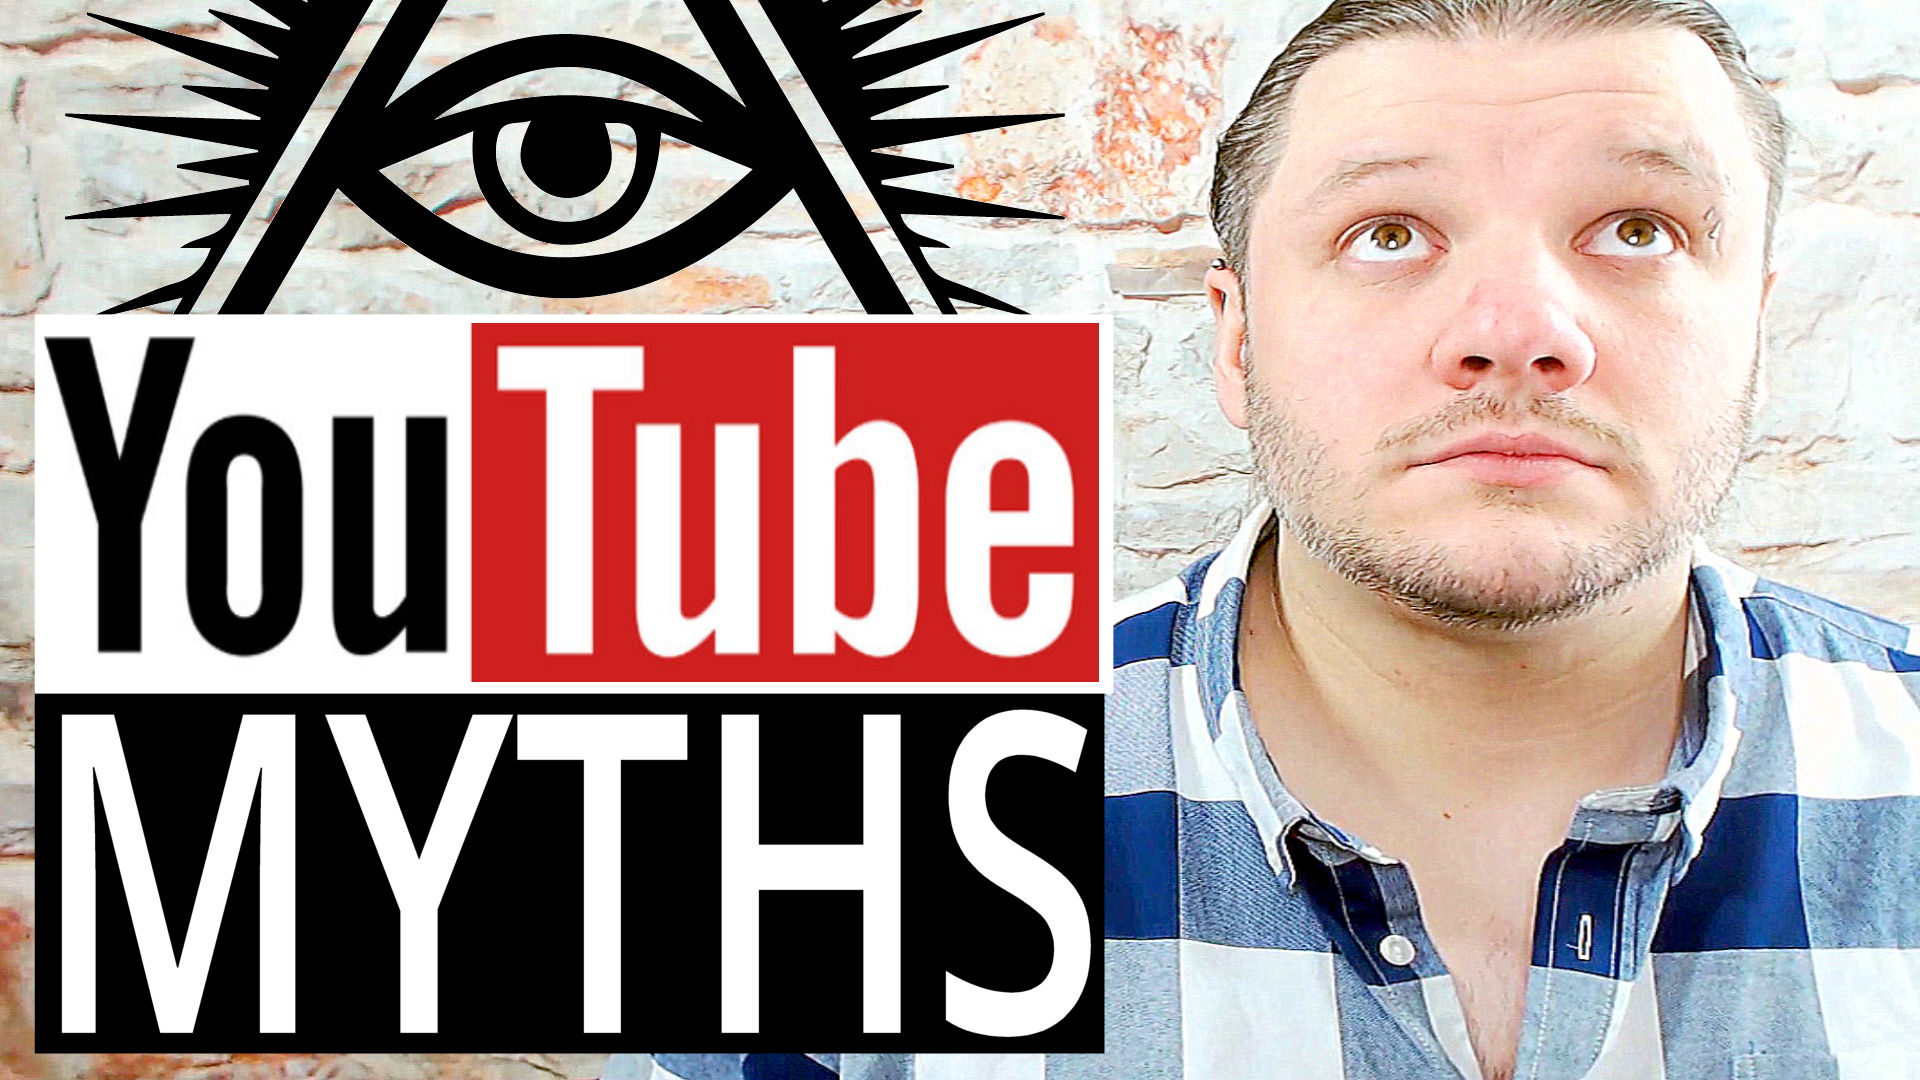 alan spicer,asyt,5 YouTube Myths,YouTube Myths,youtube secrets,youtube secrets 2018,growing on youtube,growing on youtube in 2018,YouTube Secrets That Stop You Growing On YouTube,grow your youtube channel,youtube tips to grow your channel,youtube channel growth,grow your channel,tips for youtube,grow channel,grow youtube,grow your channel on youtube,grow on youtube,youtube channel growth tips,secrets,myth,youtube myth,snowball effect myth,youtube secret